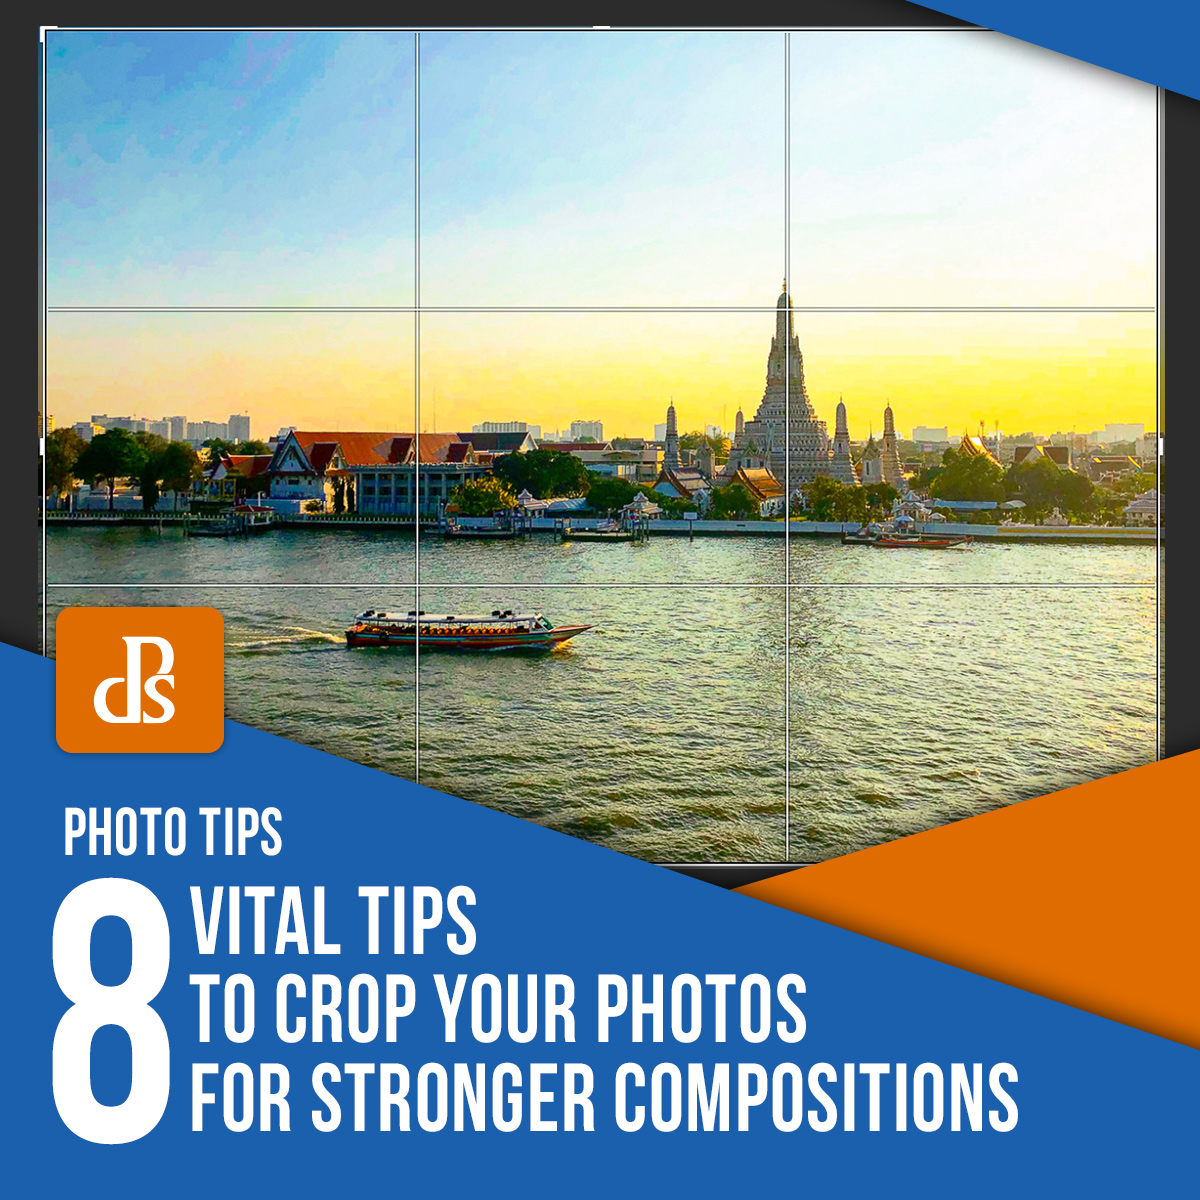 Tips to crop your photos better